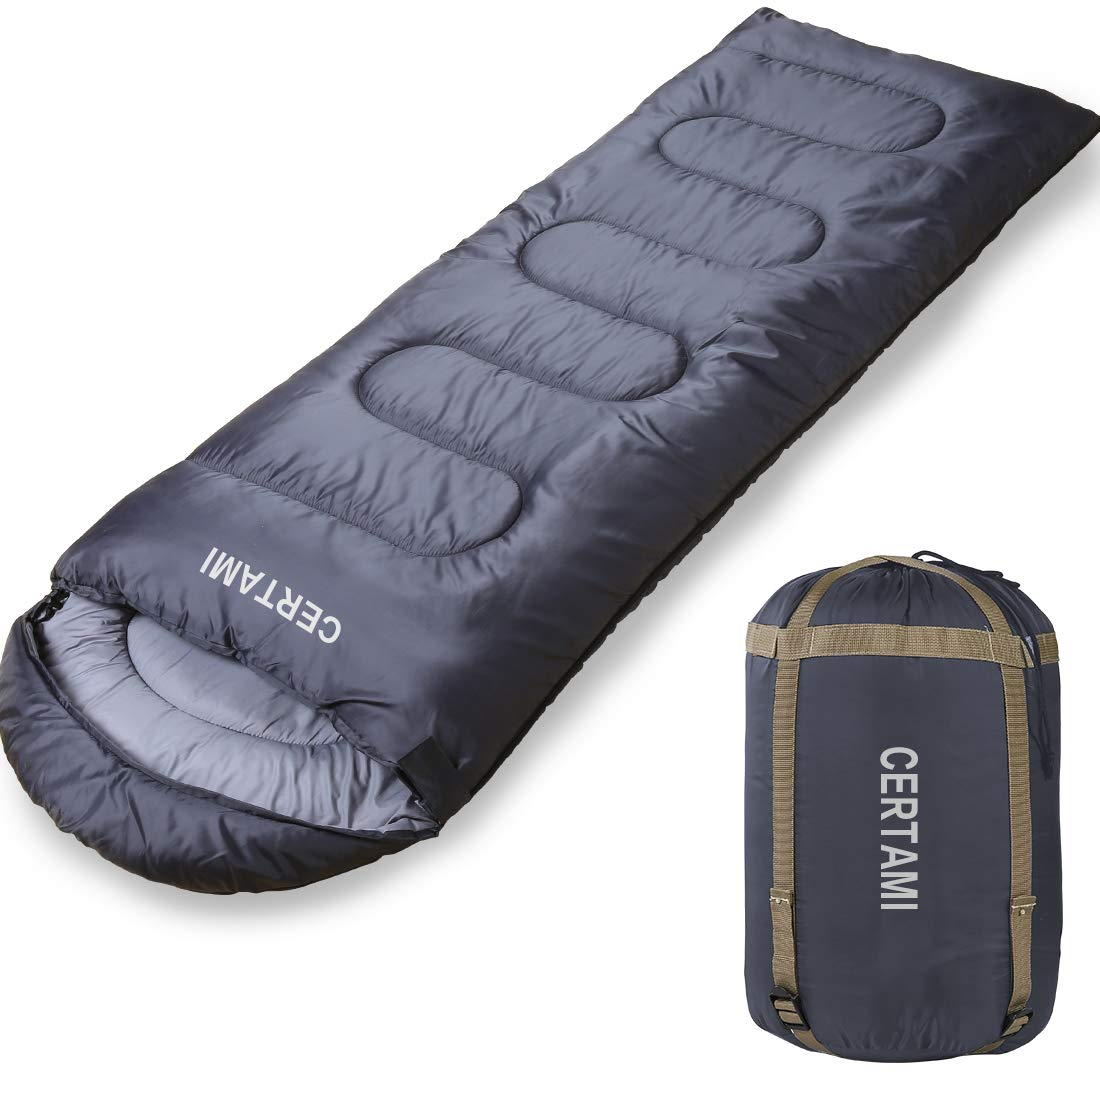 CERTAMI Sleeping Bag -Envelope Lightweight Portable Waterproof,for Adults 3 Season Outdoor Camping Hiking. (Dark Grey/Left Zip) by CERTAMI (Image #1)